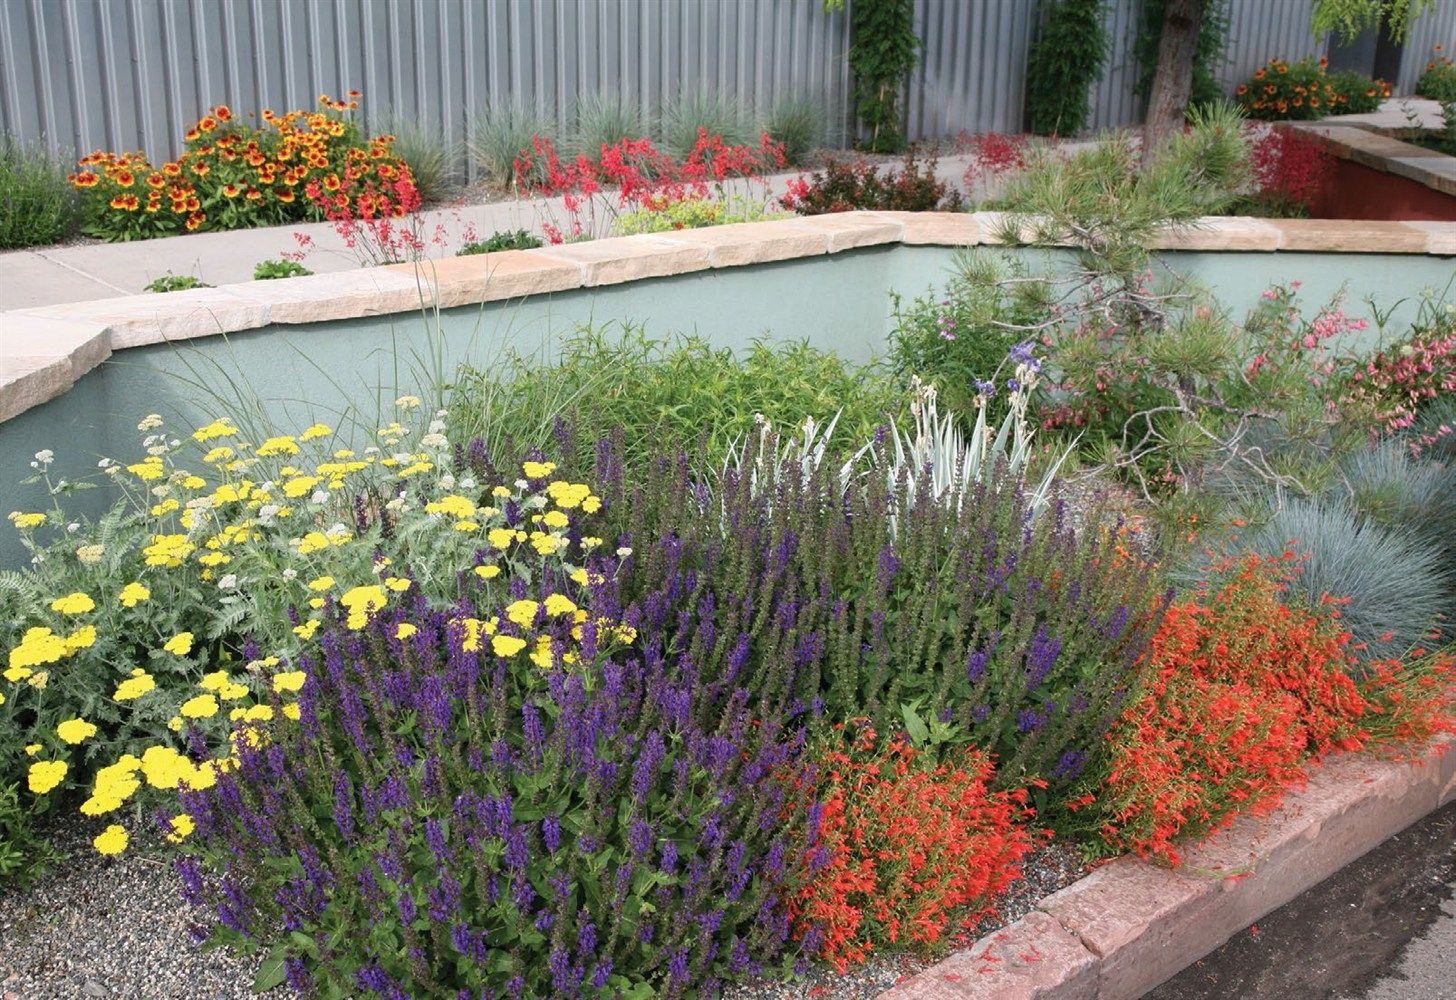 The Award Winning Display Garden At LifescapeAssociates In Denver Shows  Just How Colorful AXeriscape Installation Can Be.